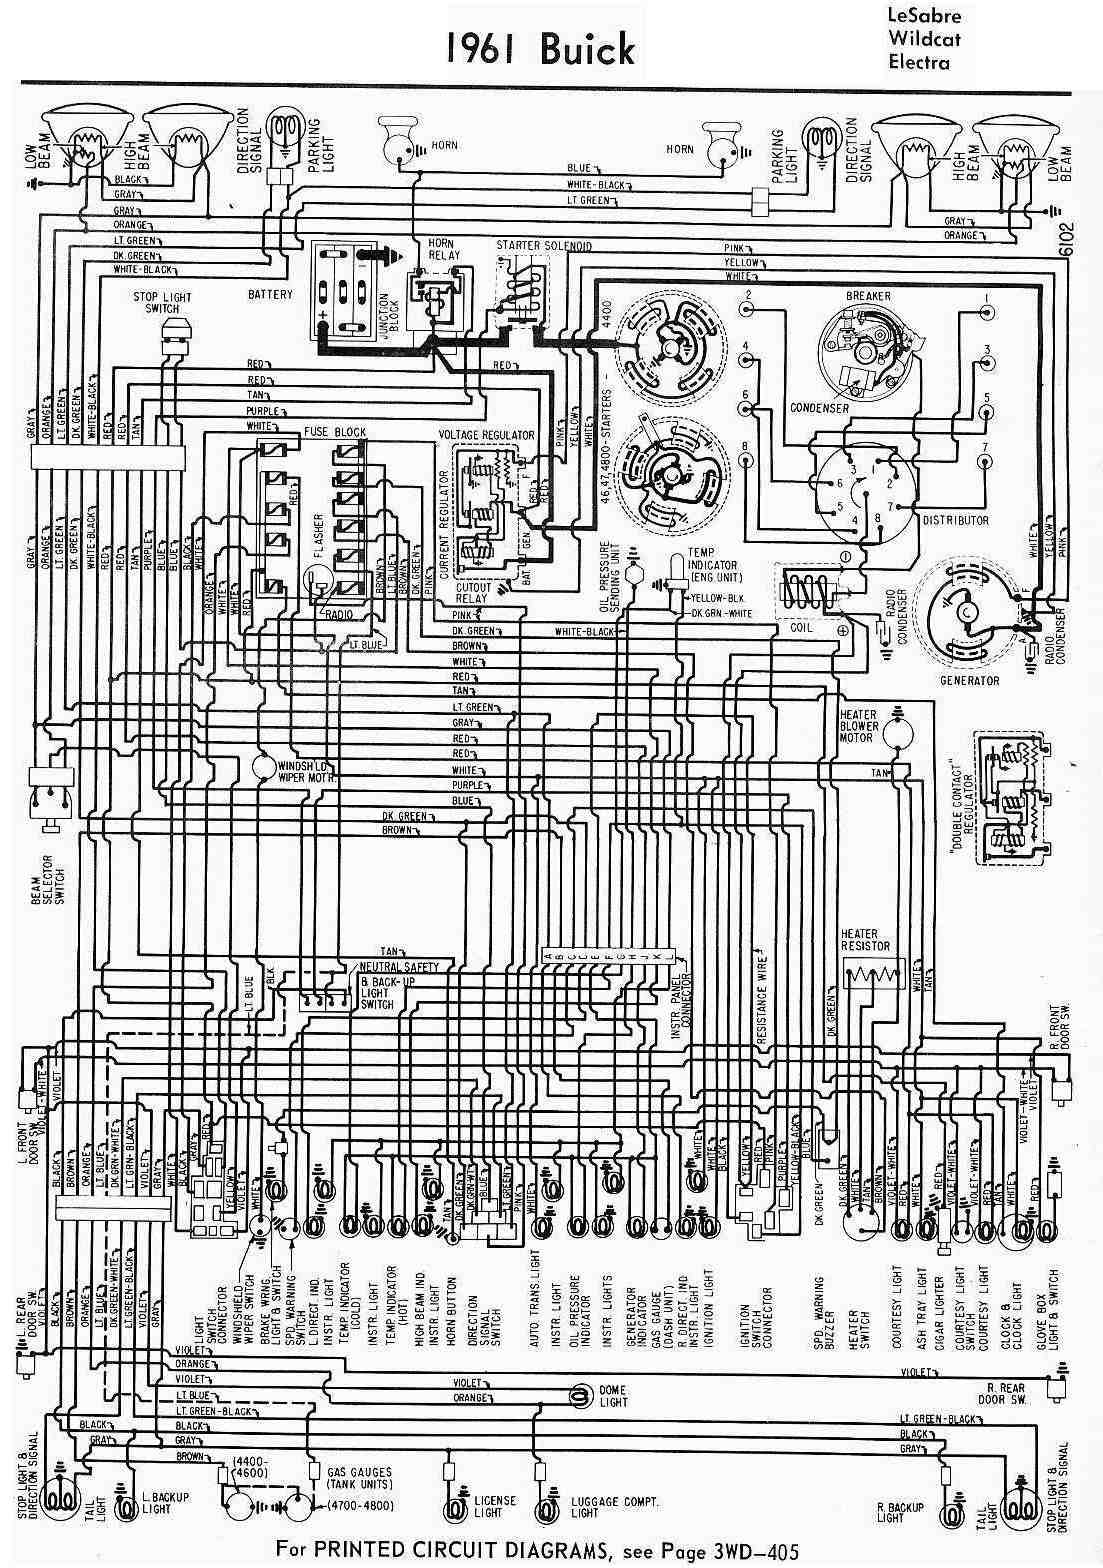 Worcester bosch 24cdi wiring diagram power socket symbol stunning worcester boiler parts diagram contemporary electrical 196120buick20lesabre2c20wildcat pooptronica Choice Image